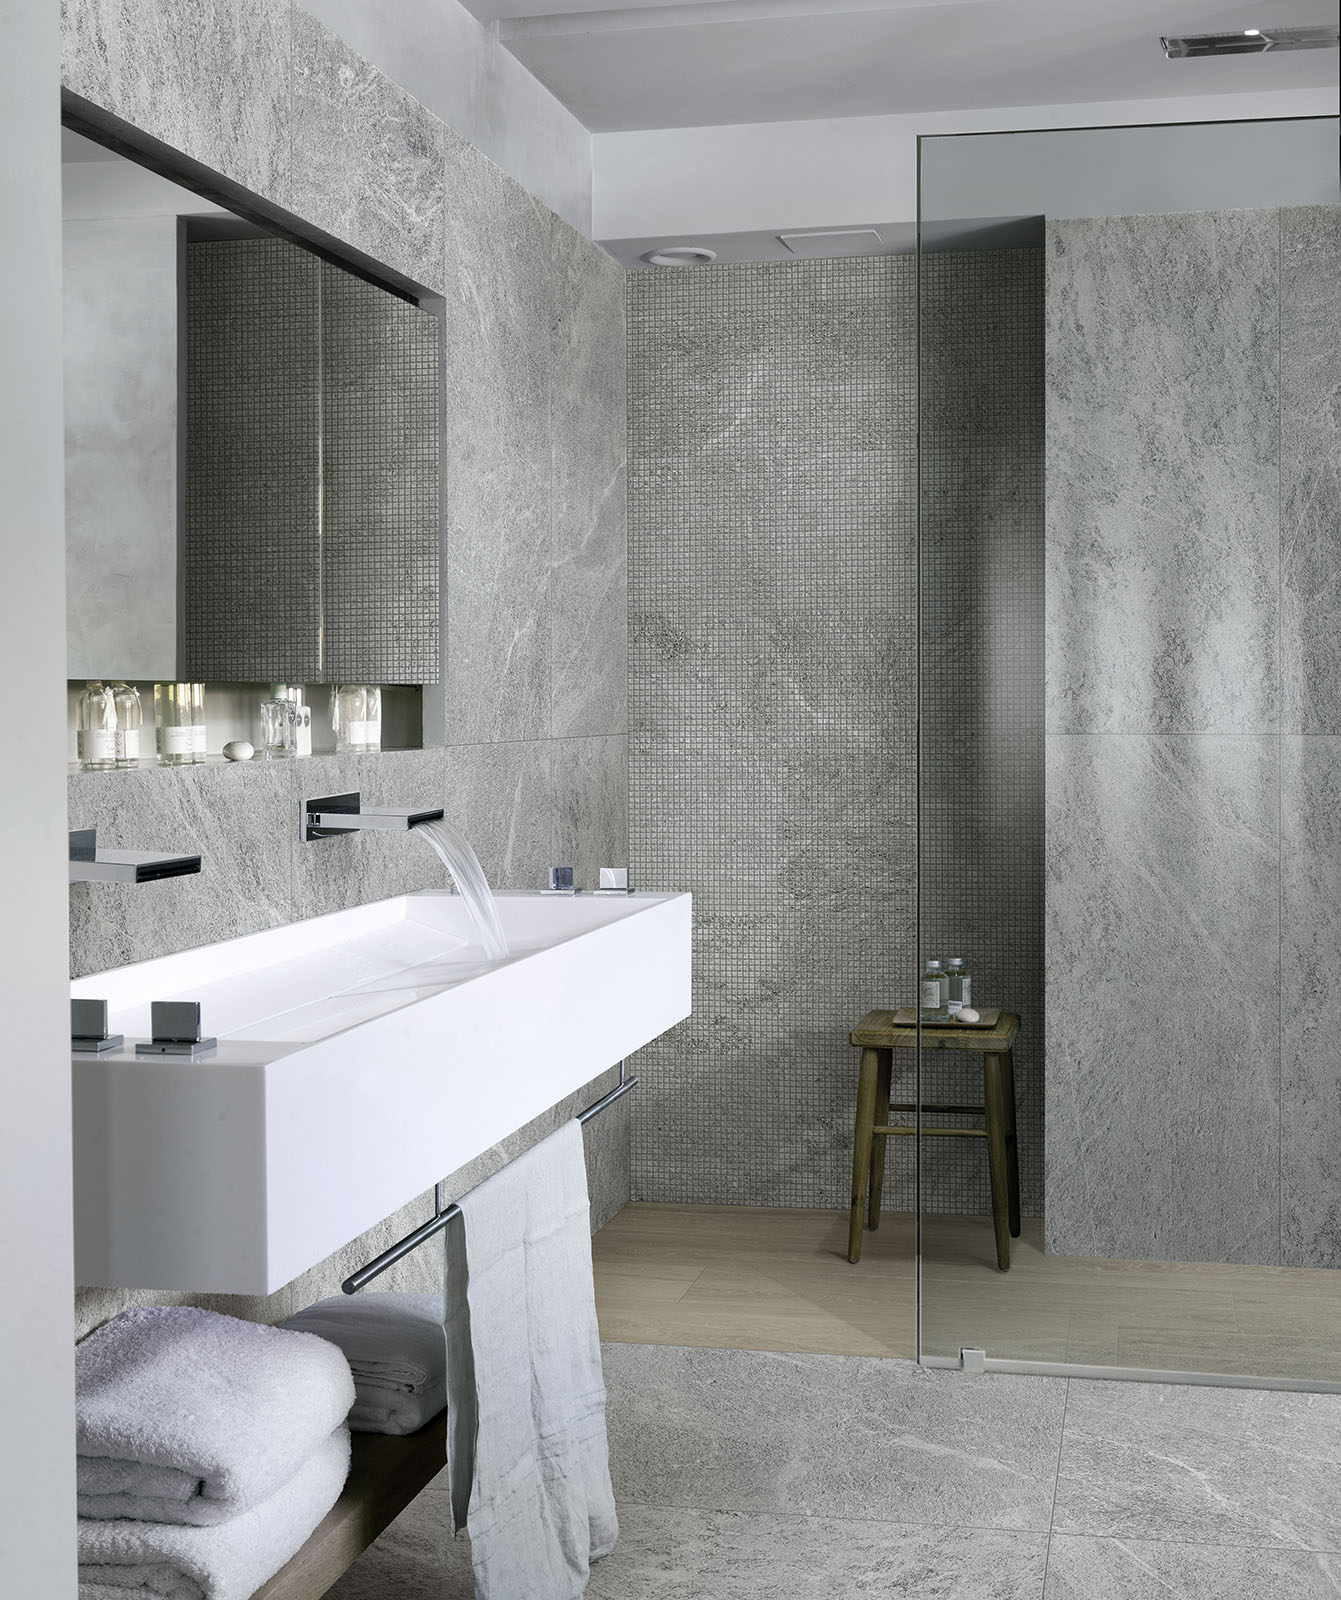 Bathroom flooring ceramic and porcelain stoneware marazzi for Salle de bain carrelage blanc mur gris